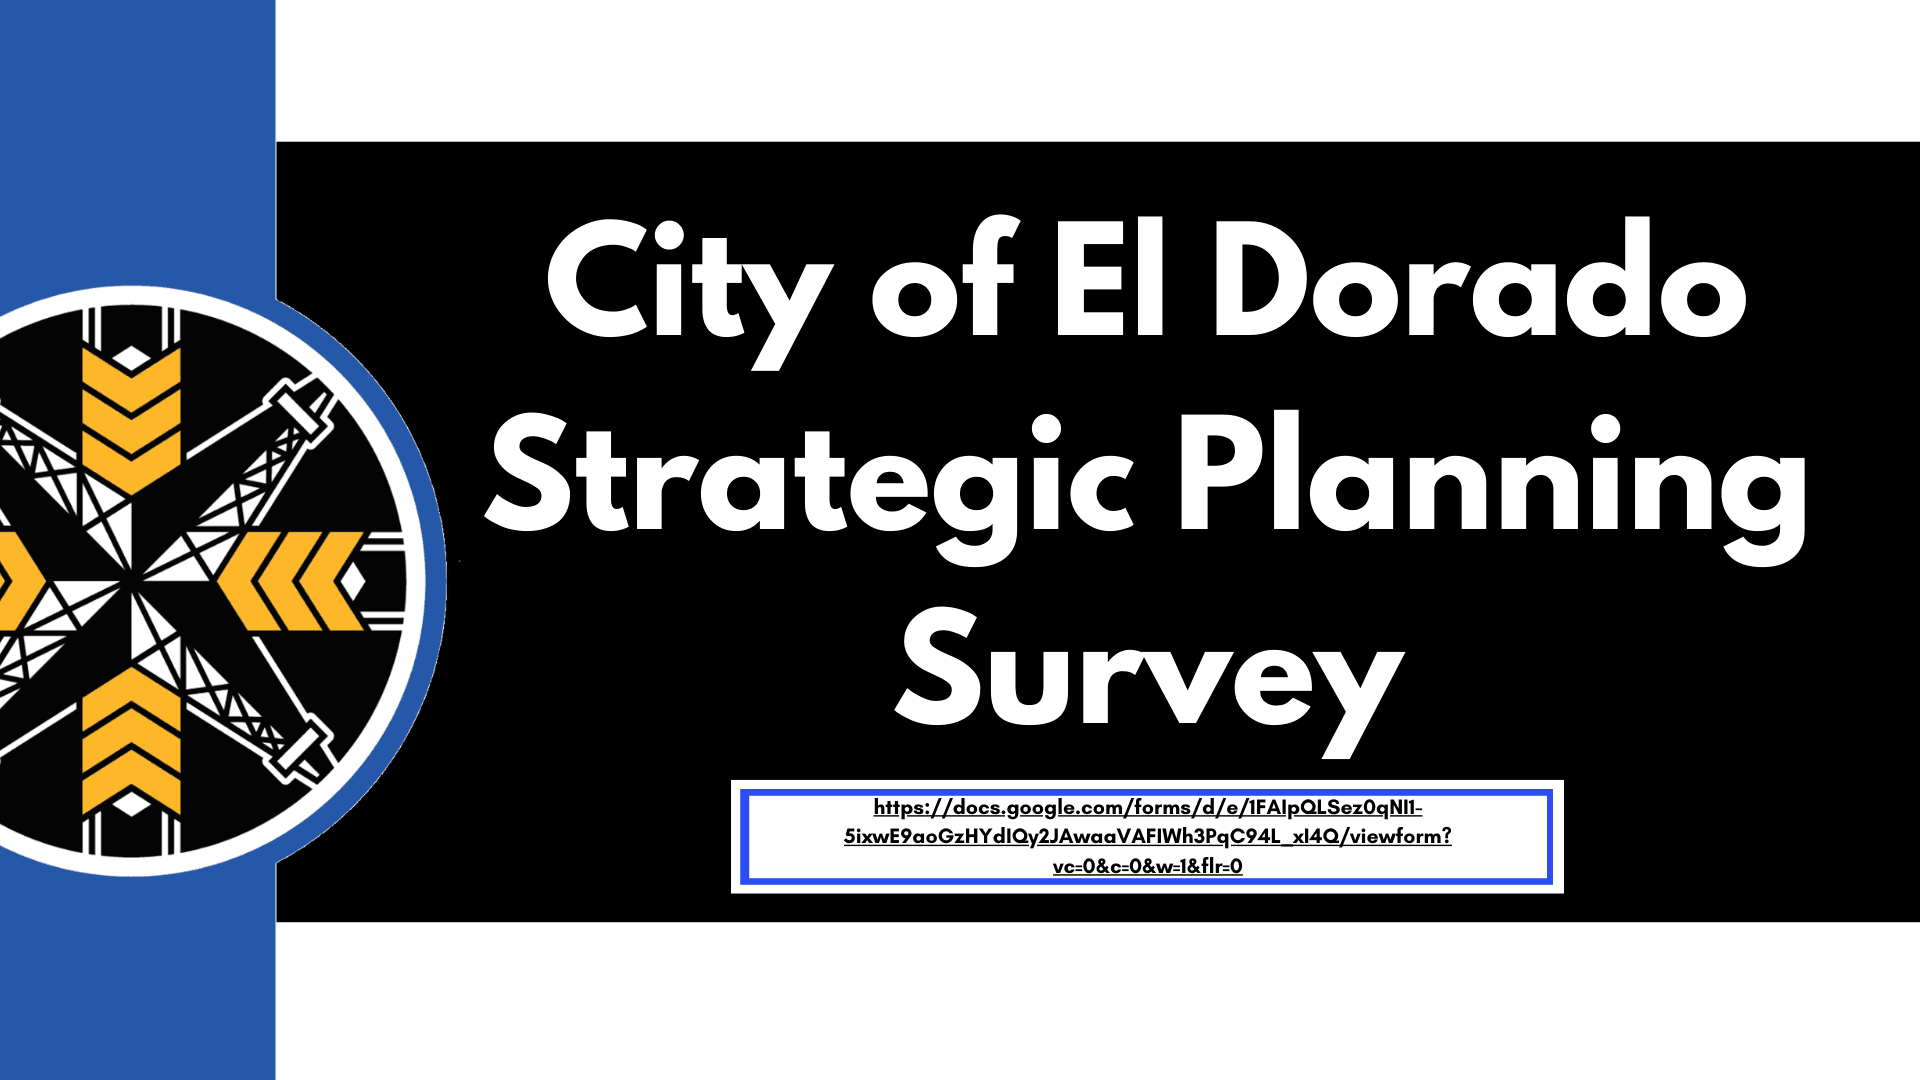 City of El Dorado Survey Image